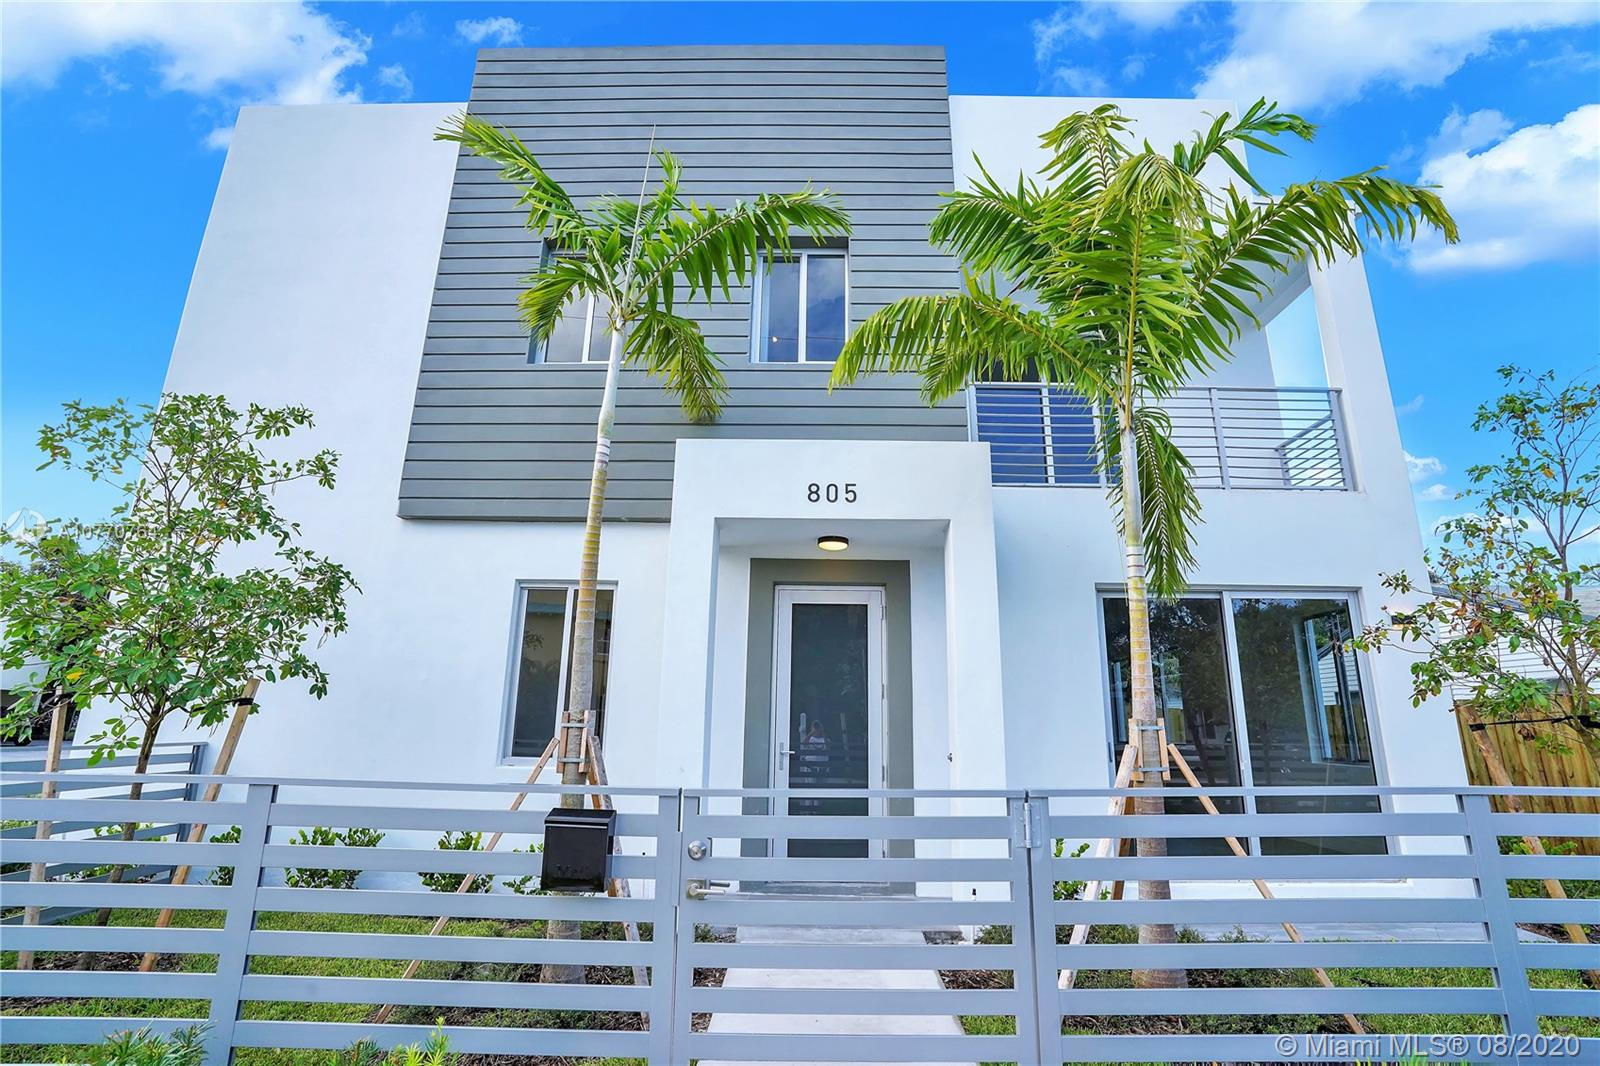 Newest townhouse in Fort Lauderdale can now be yours! 1922 SF under air. This will be a townhouse community of 4 units. 3 bedrooms, 2.5 bathrooms, 2 car garage, private backyard, beautiful finishes and layout. A great room with open layout and kitchen island. 3 bedrooms on 2nd floor. Garage, living room, powder room, dinning room and kitchen on first floor. Estimated completion September 2020.